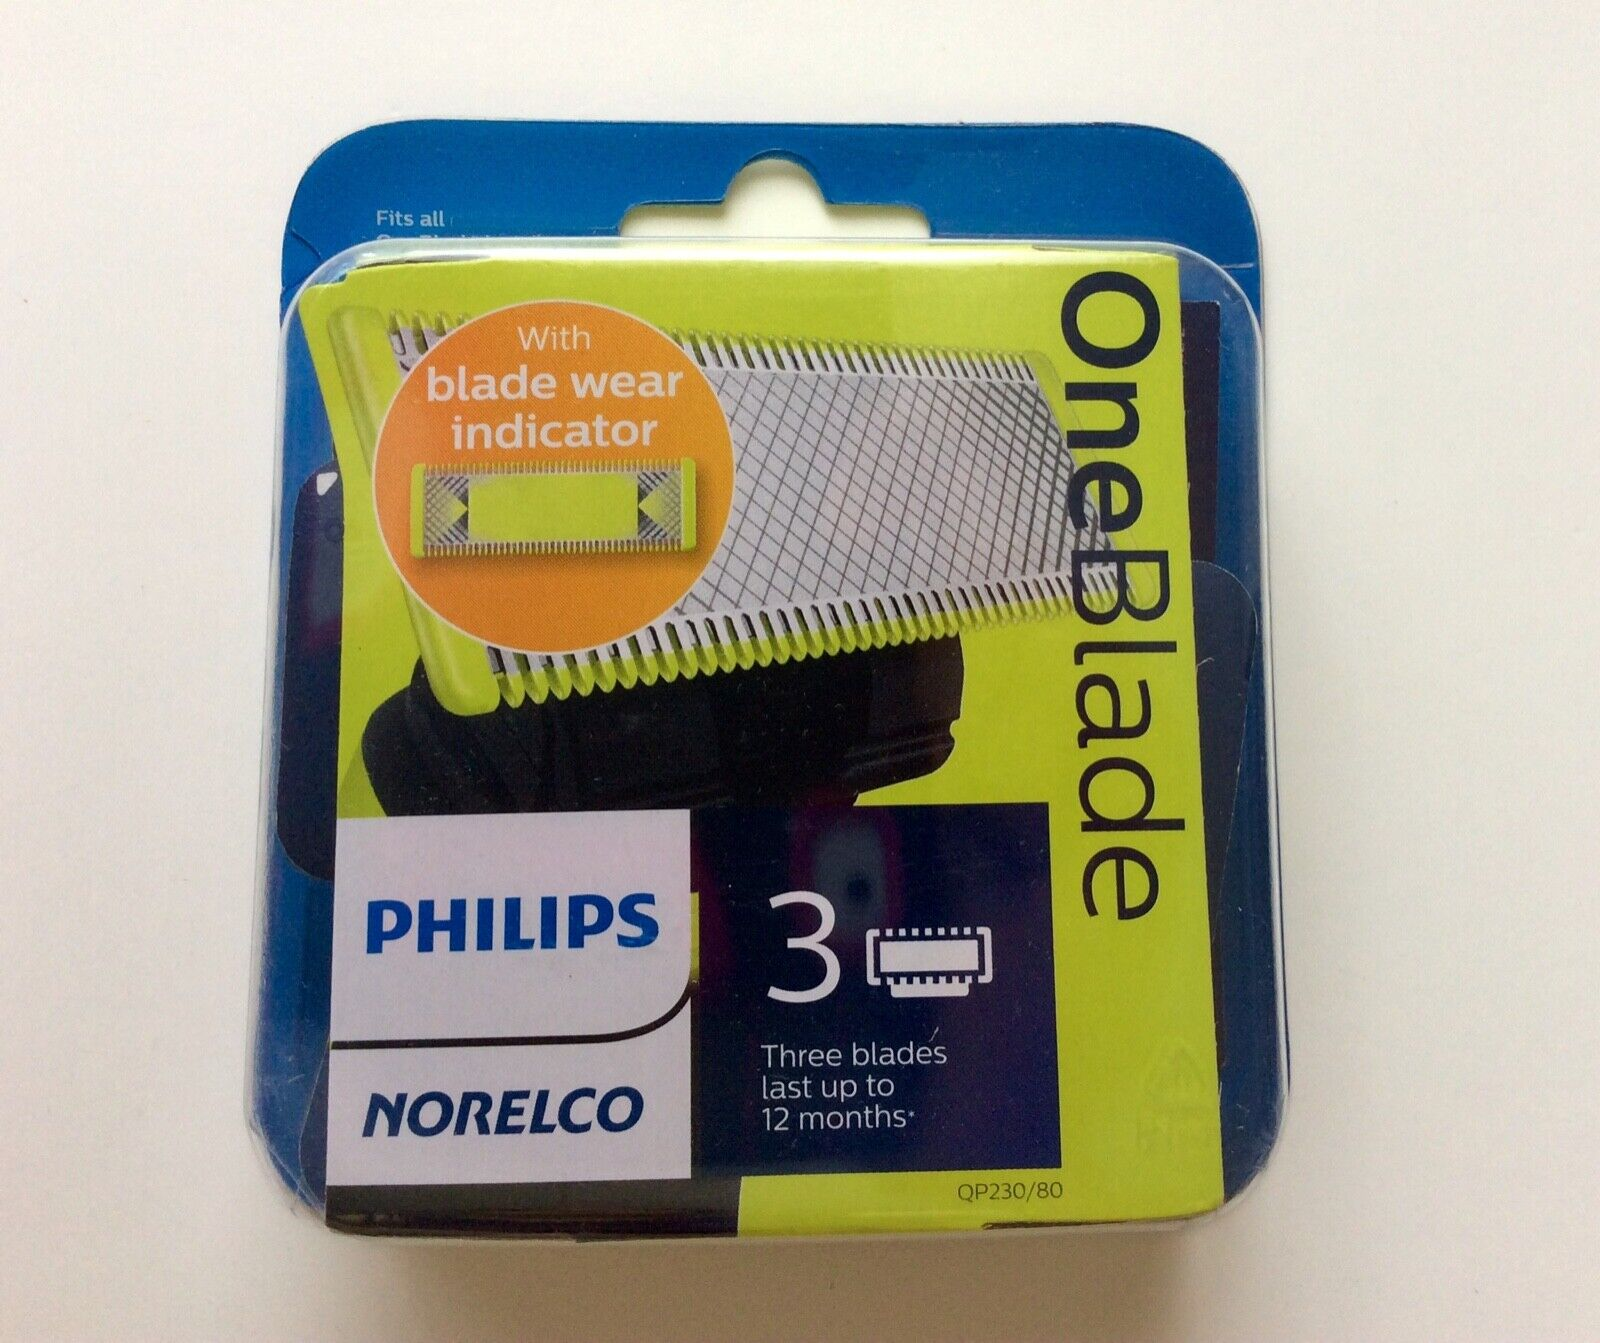 Philips Norelco OneBlade Replacement Blades 3 Pack - QP230/8